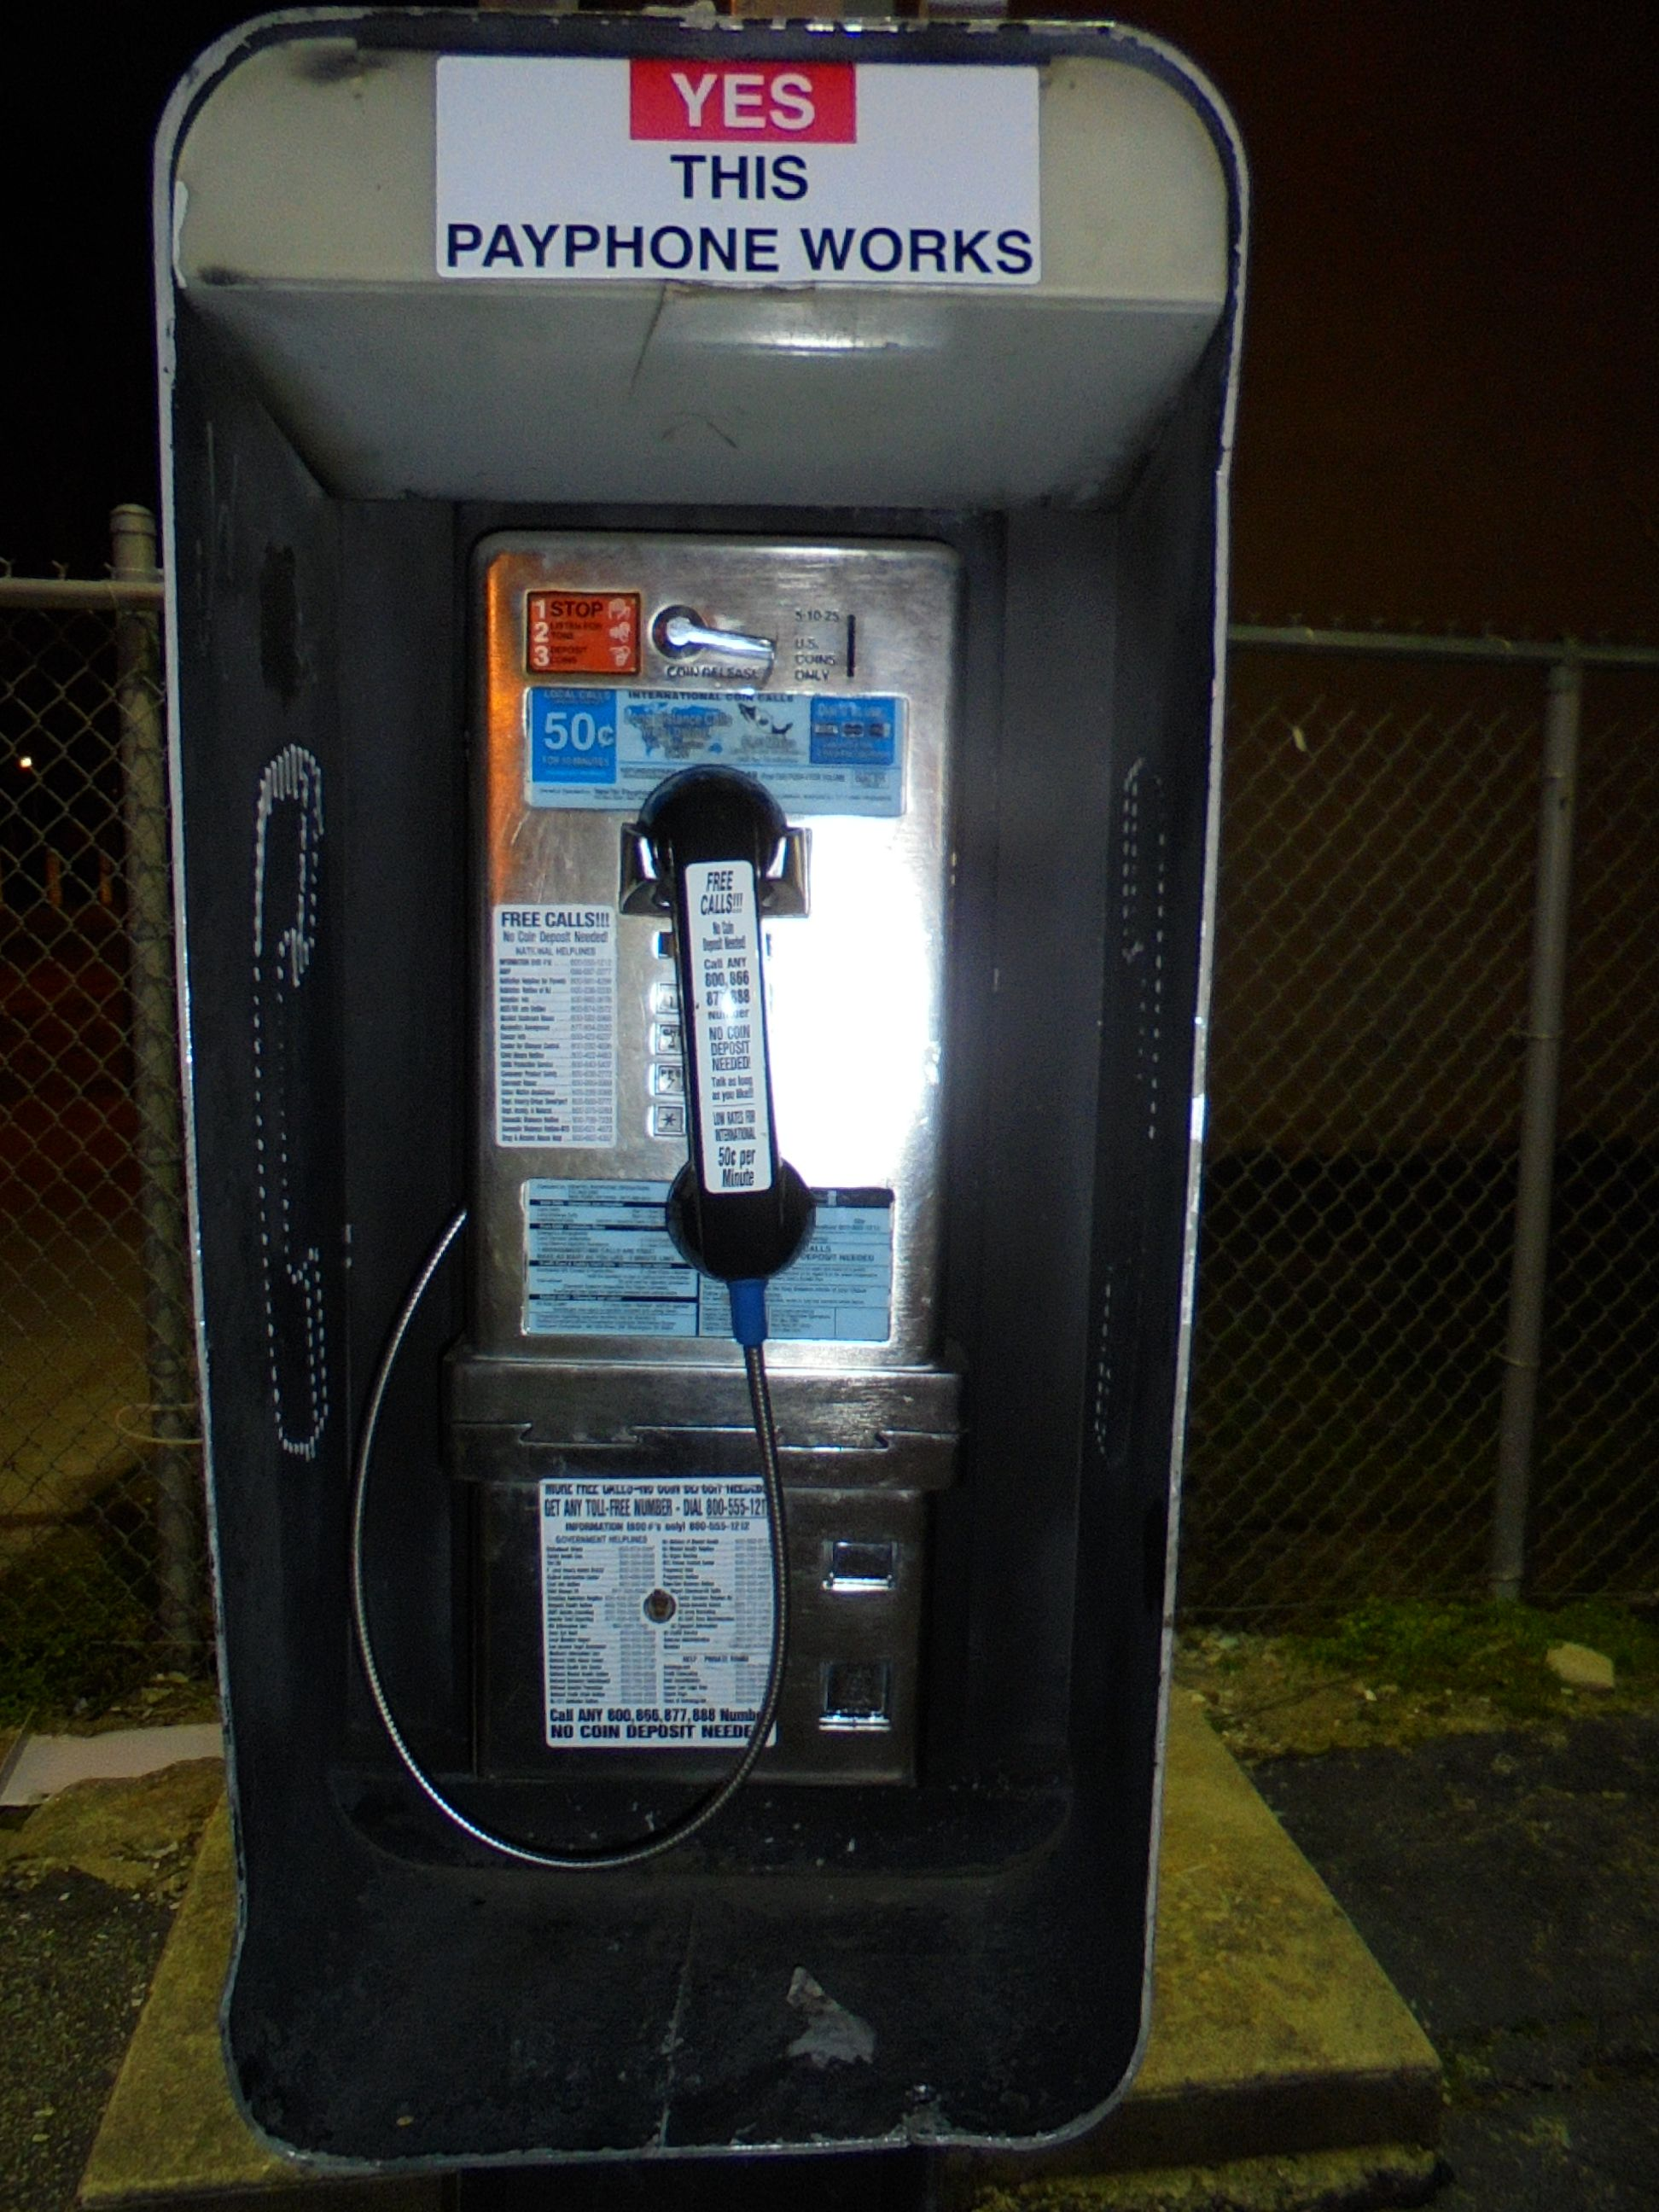 This #payphone on #Germantown #Avenue in #Philadelphia #robs you of your #money at the #Sunoco #gas #station on #Washington #lane